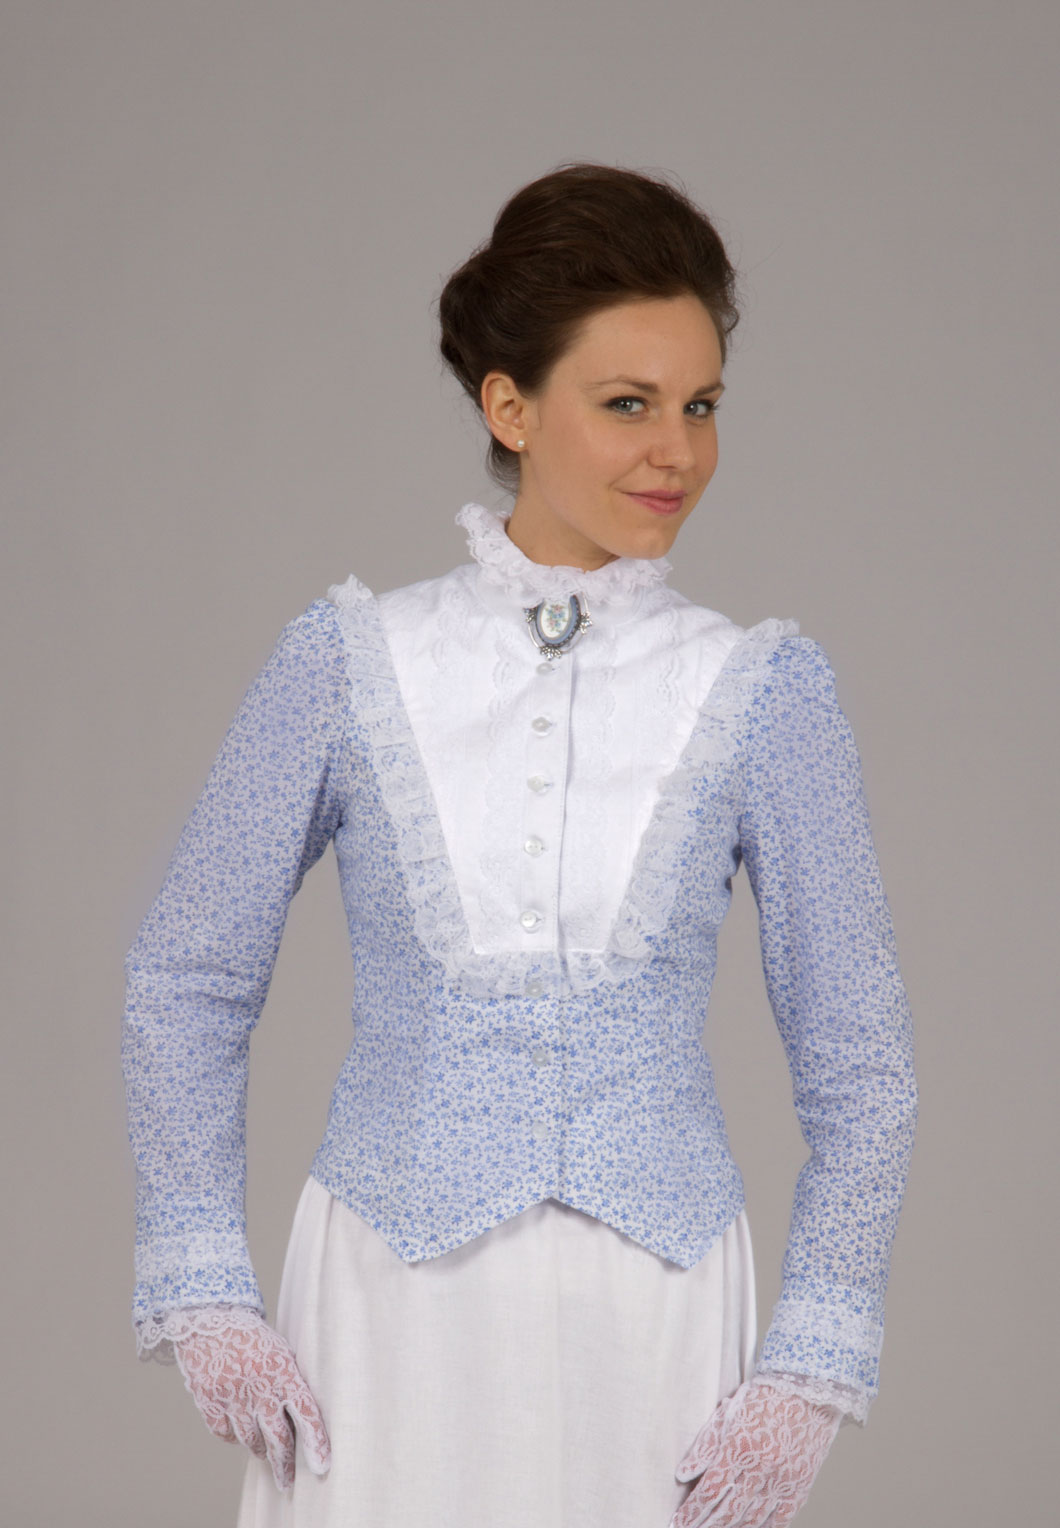 025817d781d3fb Victorian Blouses from Recollections (Page 1 of 3)